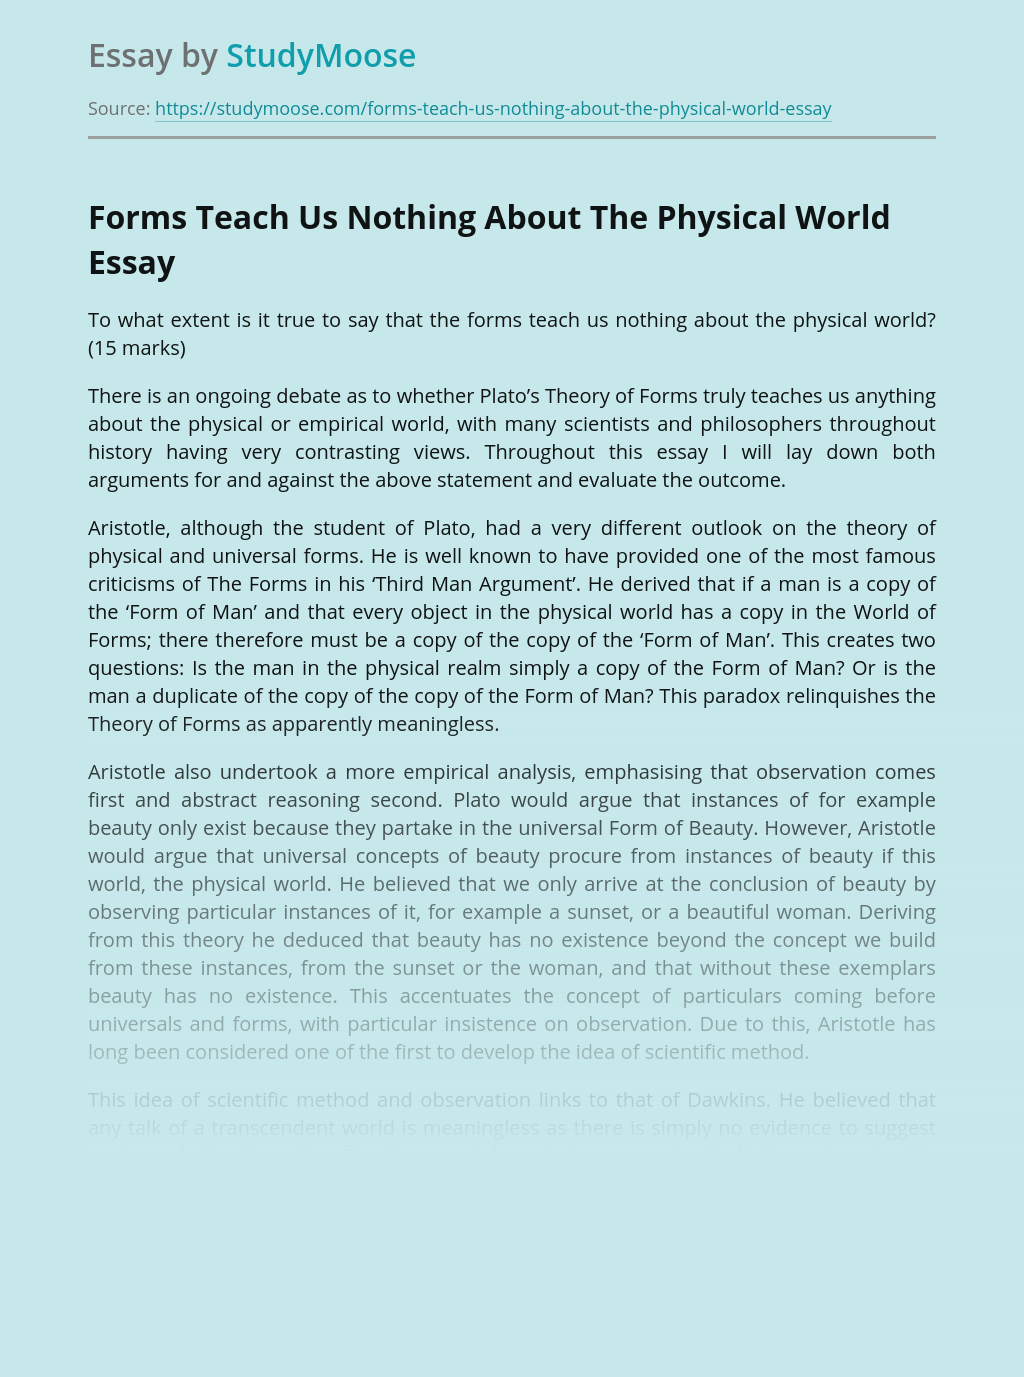 Forms Teach Us Nothing About The Physical World